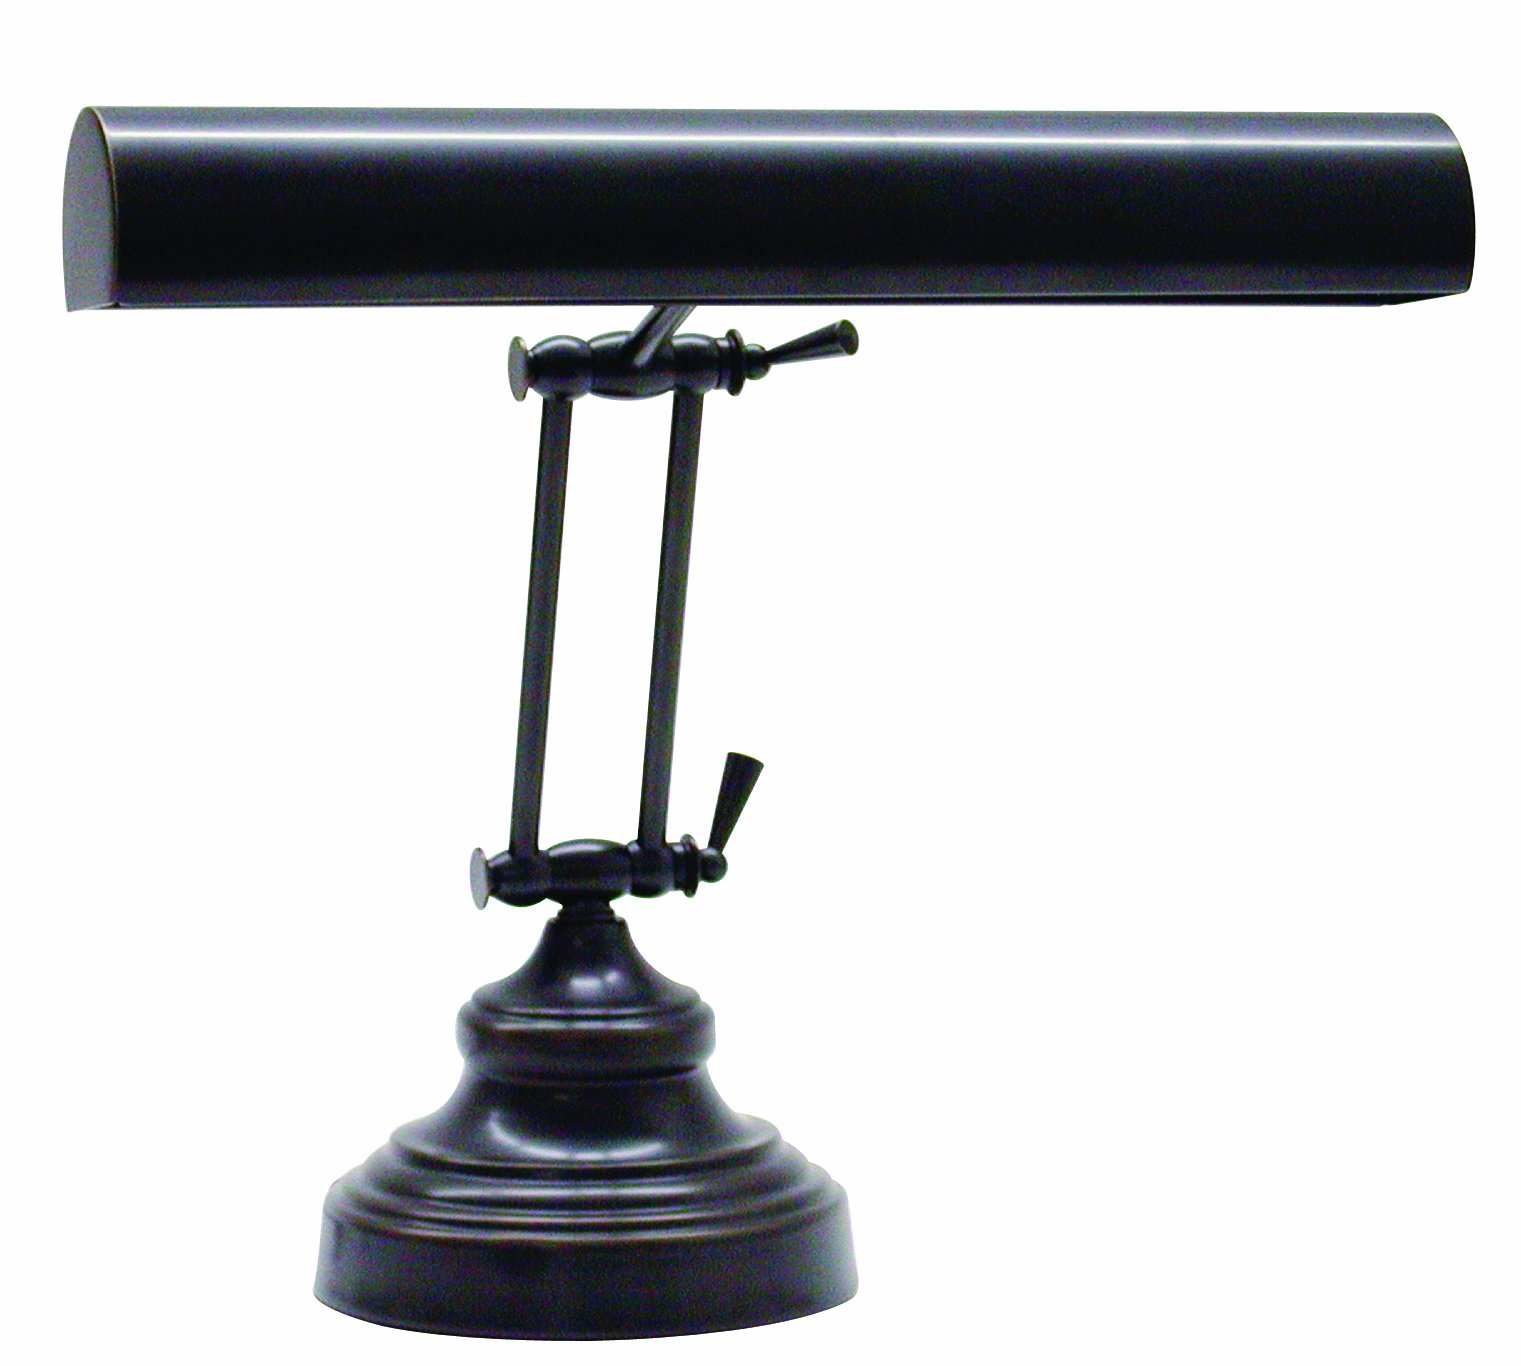 House Of Troy AP14-41-91 Advent Collection 12-Inch Adjustable Piano/Desk Portable Lamp, Oil Rubbed Bronze